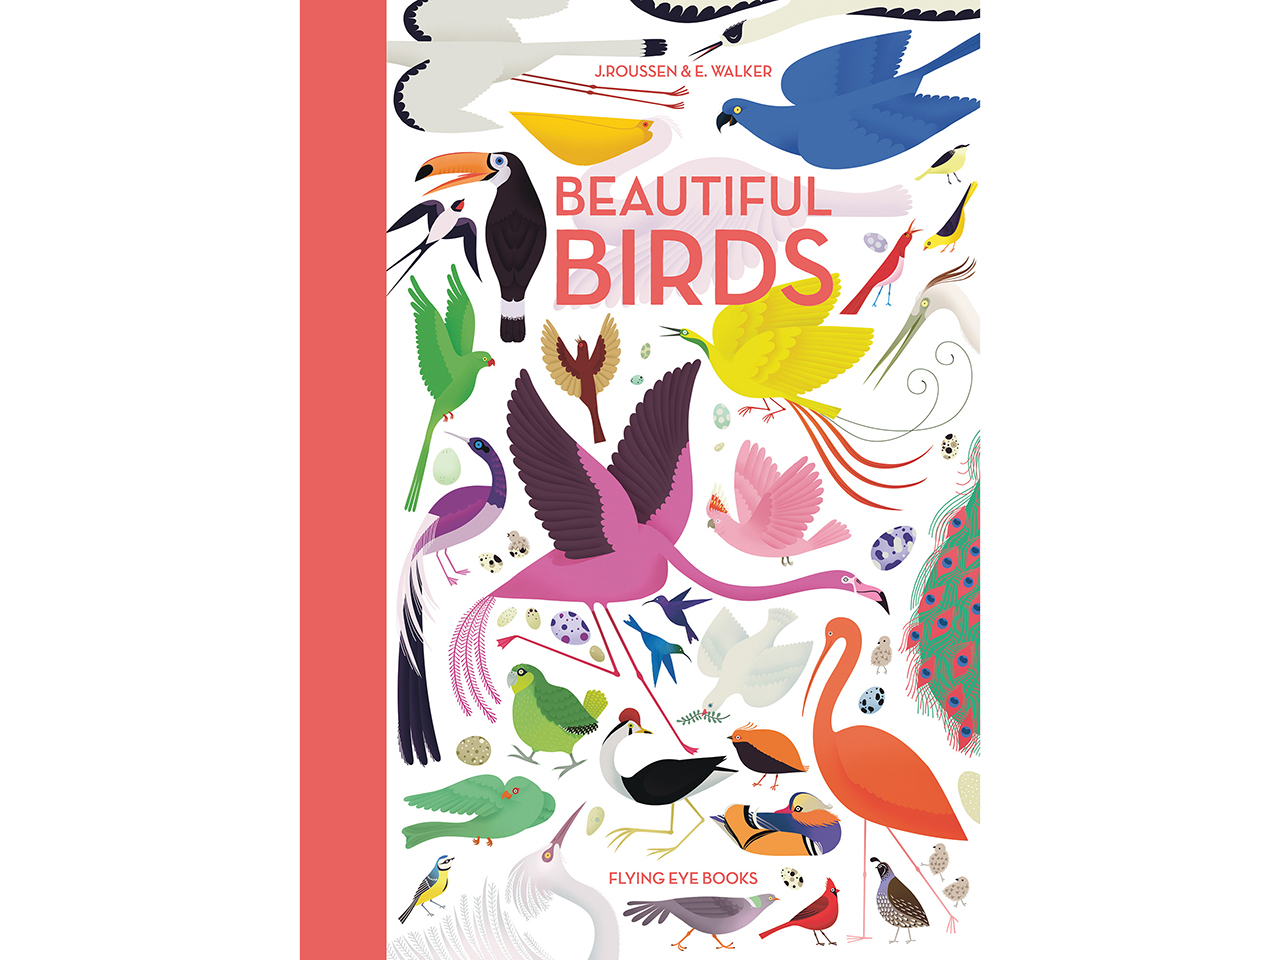 Beautiful Birds book cover